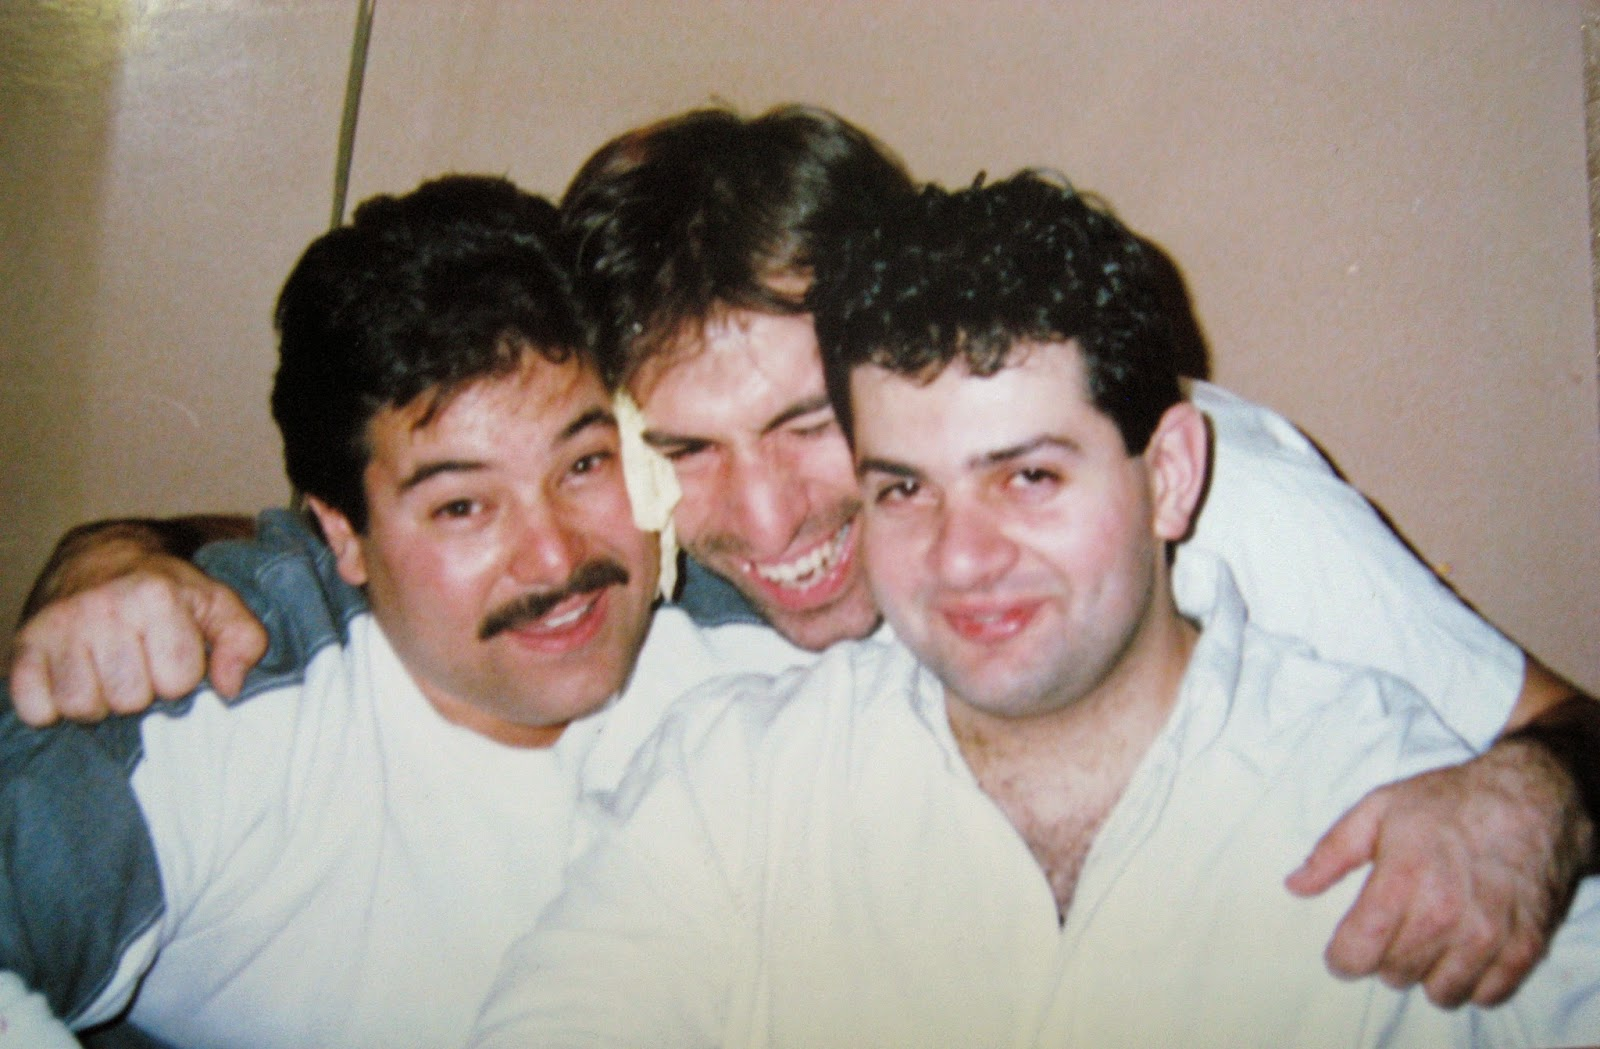 Gregg Ponciano (left) Tommy Mondello & Ronnie Gallo 3 sheets to the wind  LoL